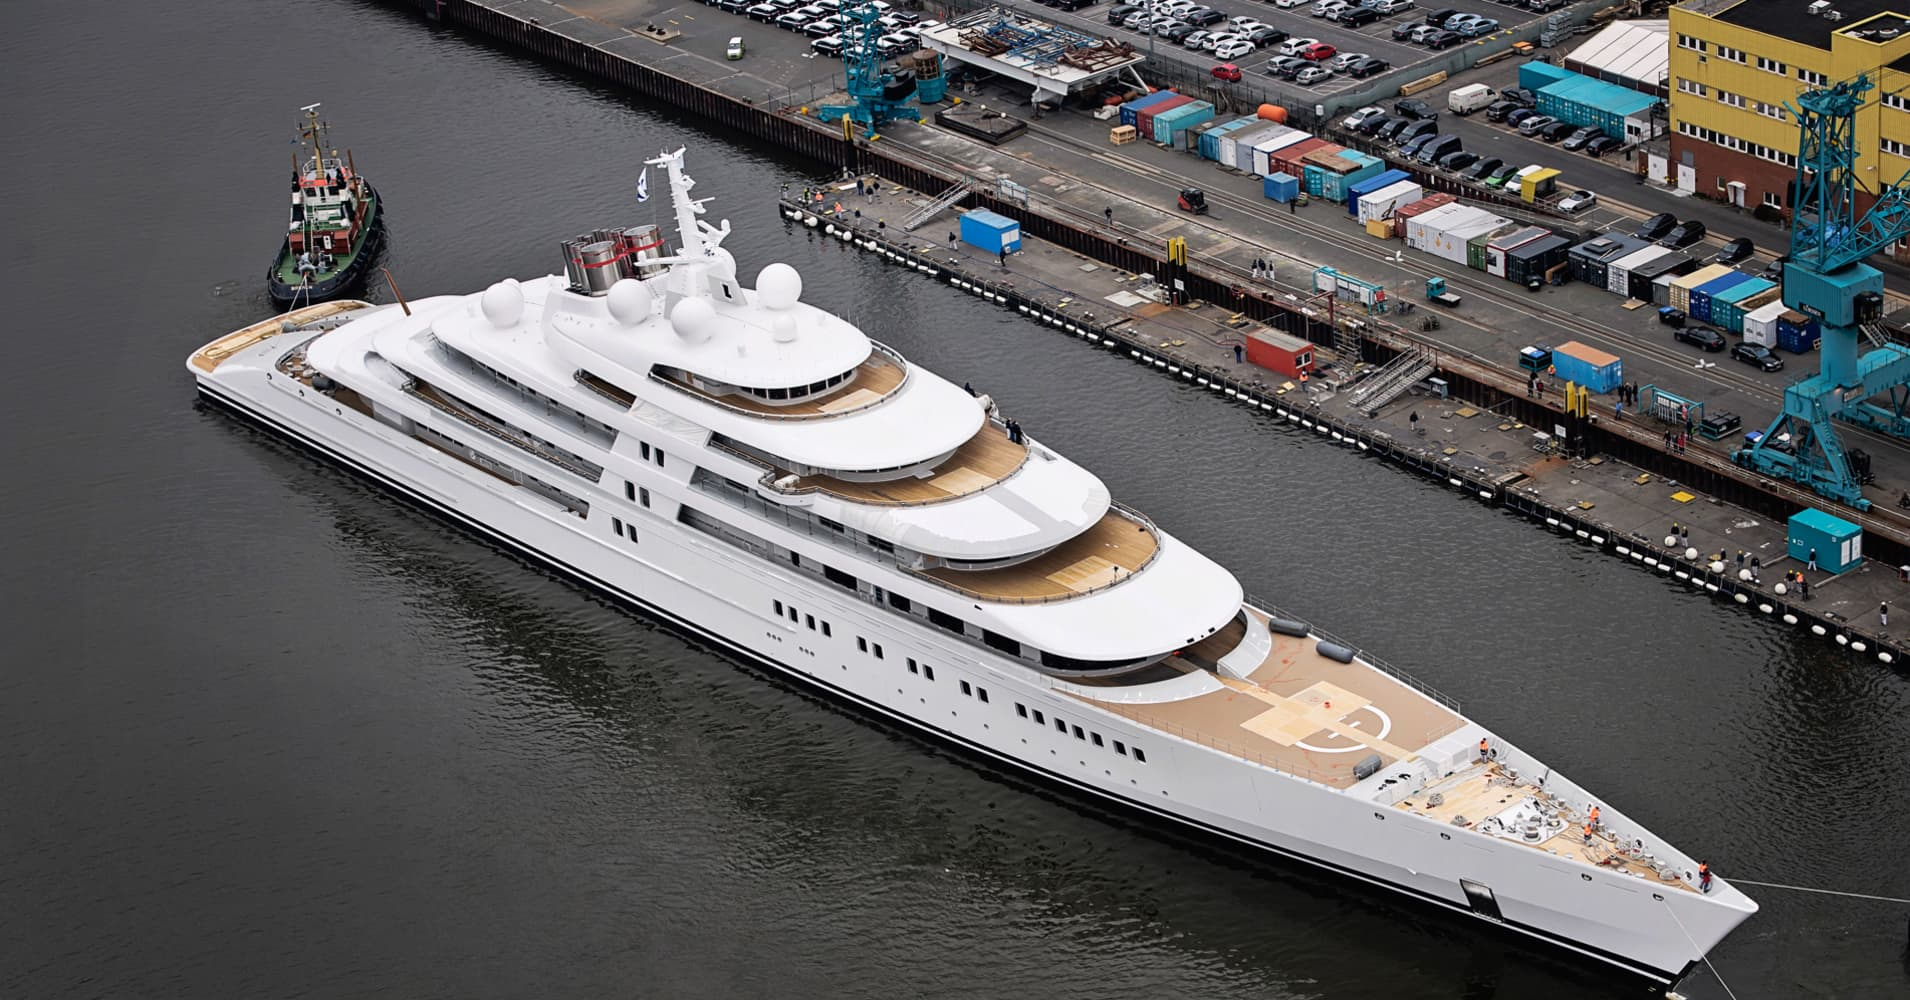 World's largest superyacht is now also the fastest